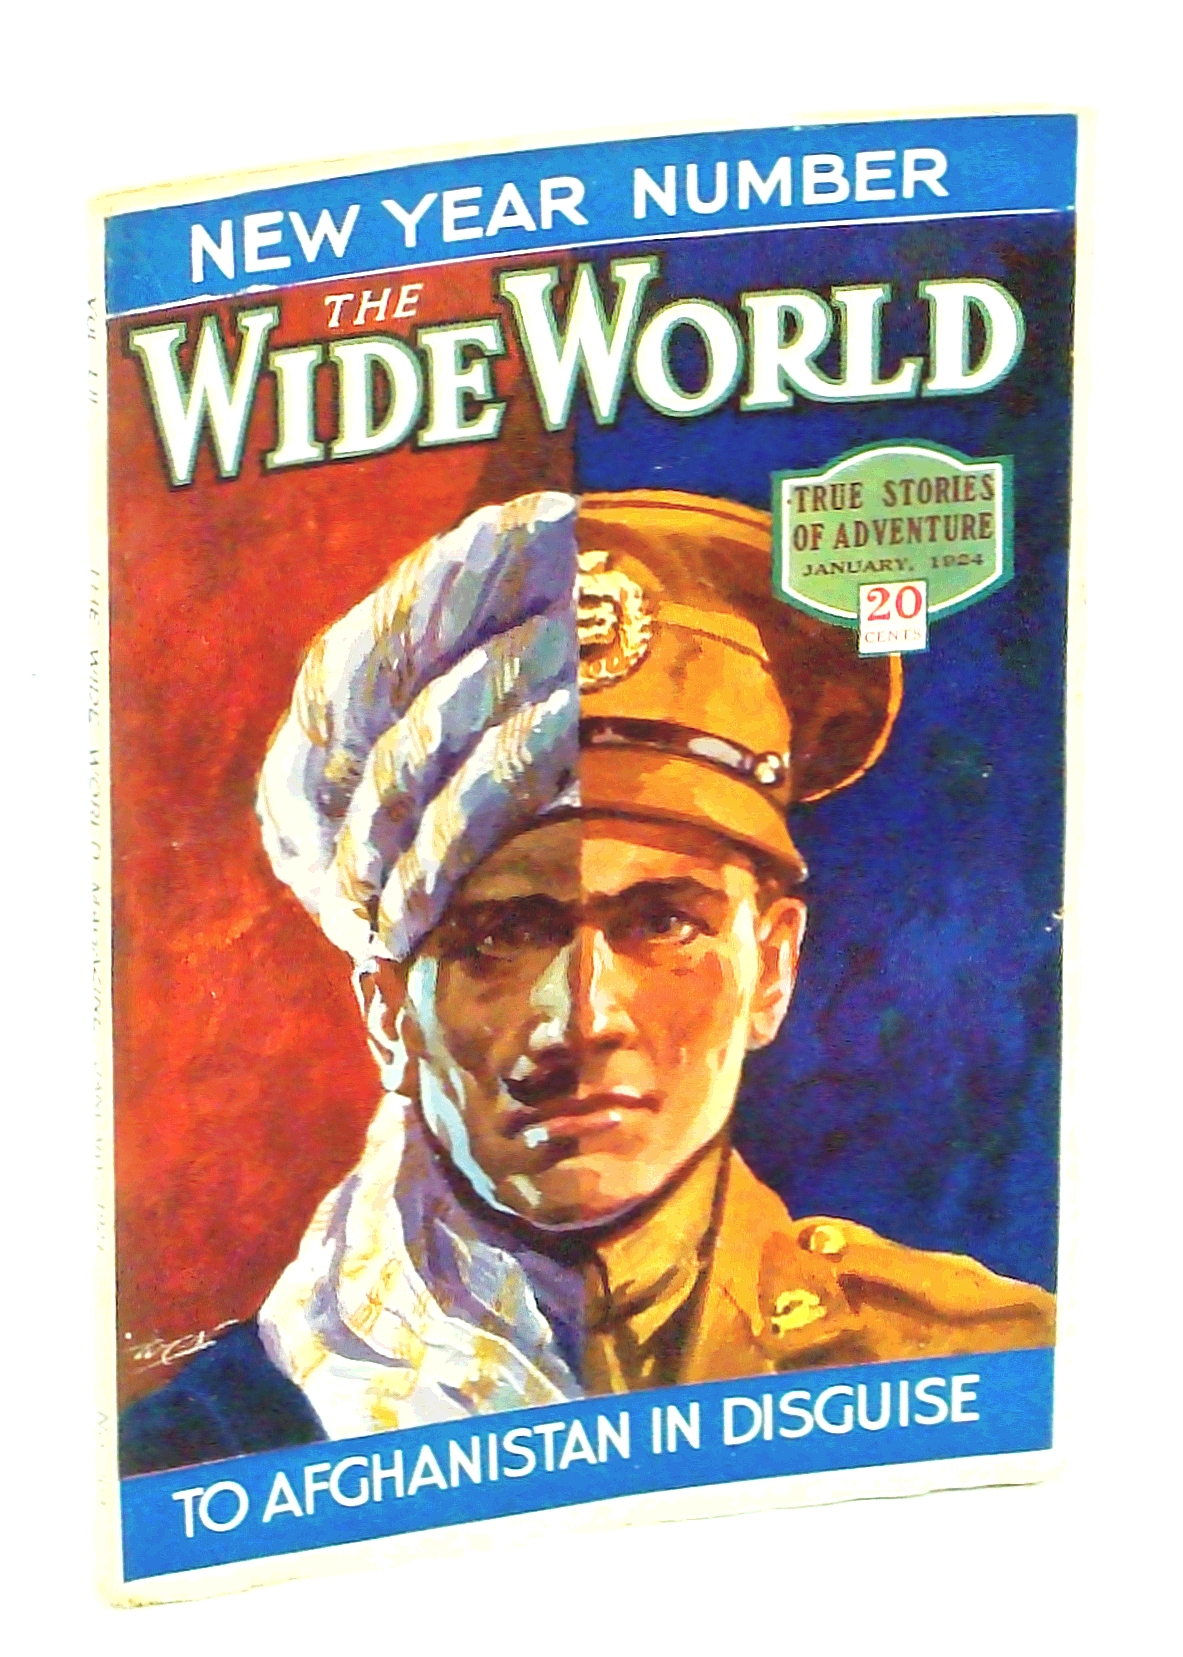 Image for The Wide World Magazine - True Stories of Adventure, January [Jan.] 1924, Vol. LII, No. 309: To Afghanistan in Disguise